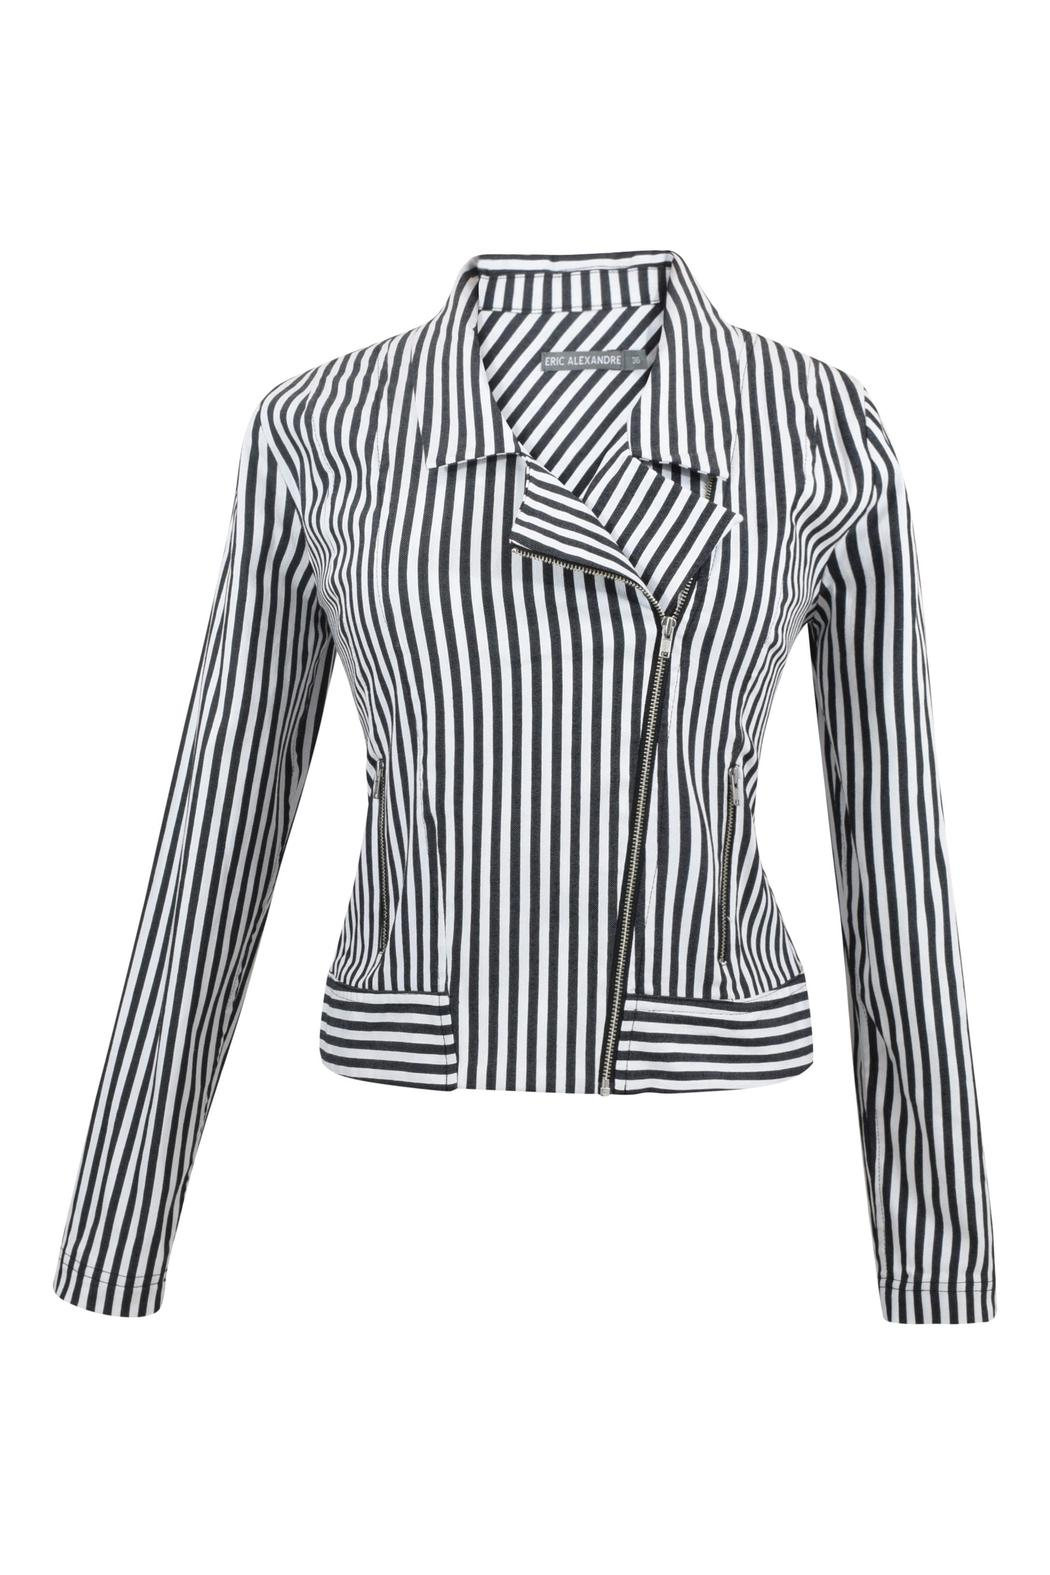 Eric Alexandre Striped Cotton Jacket - Main Image